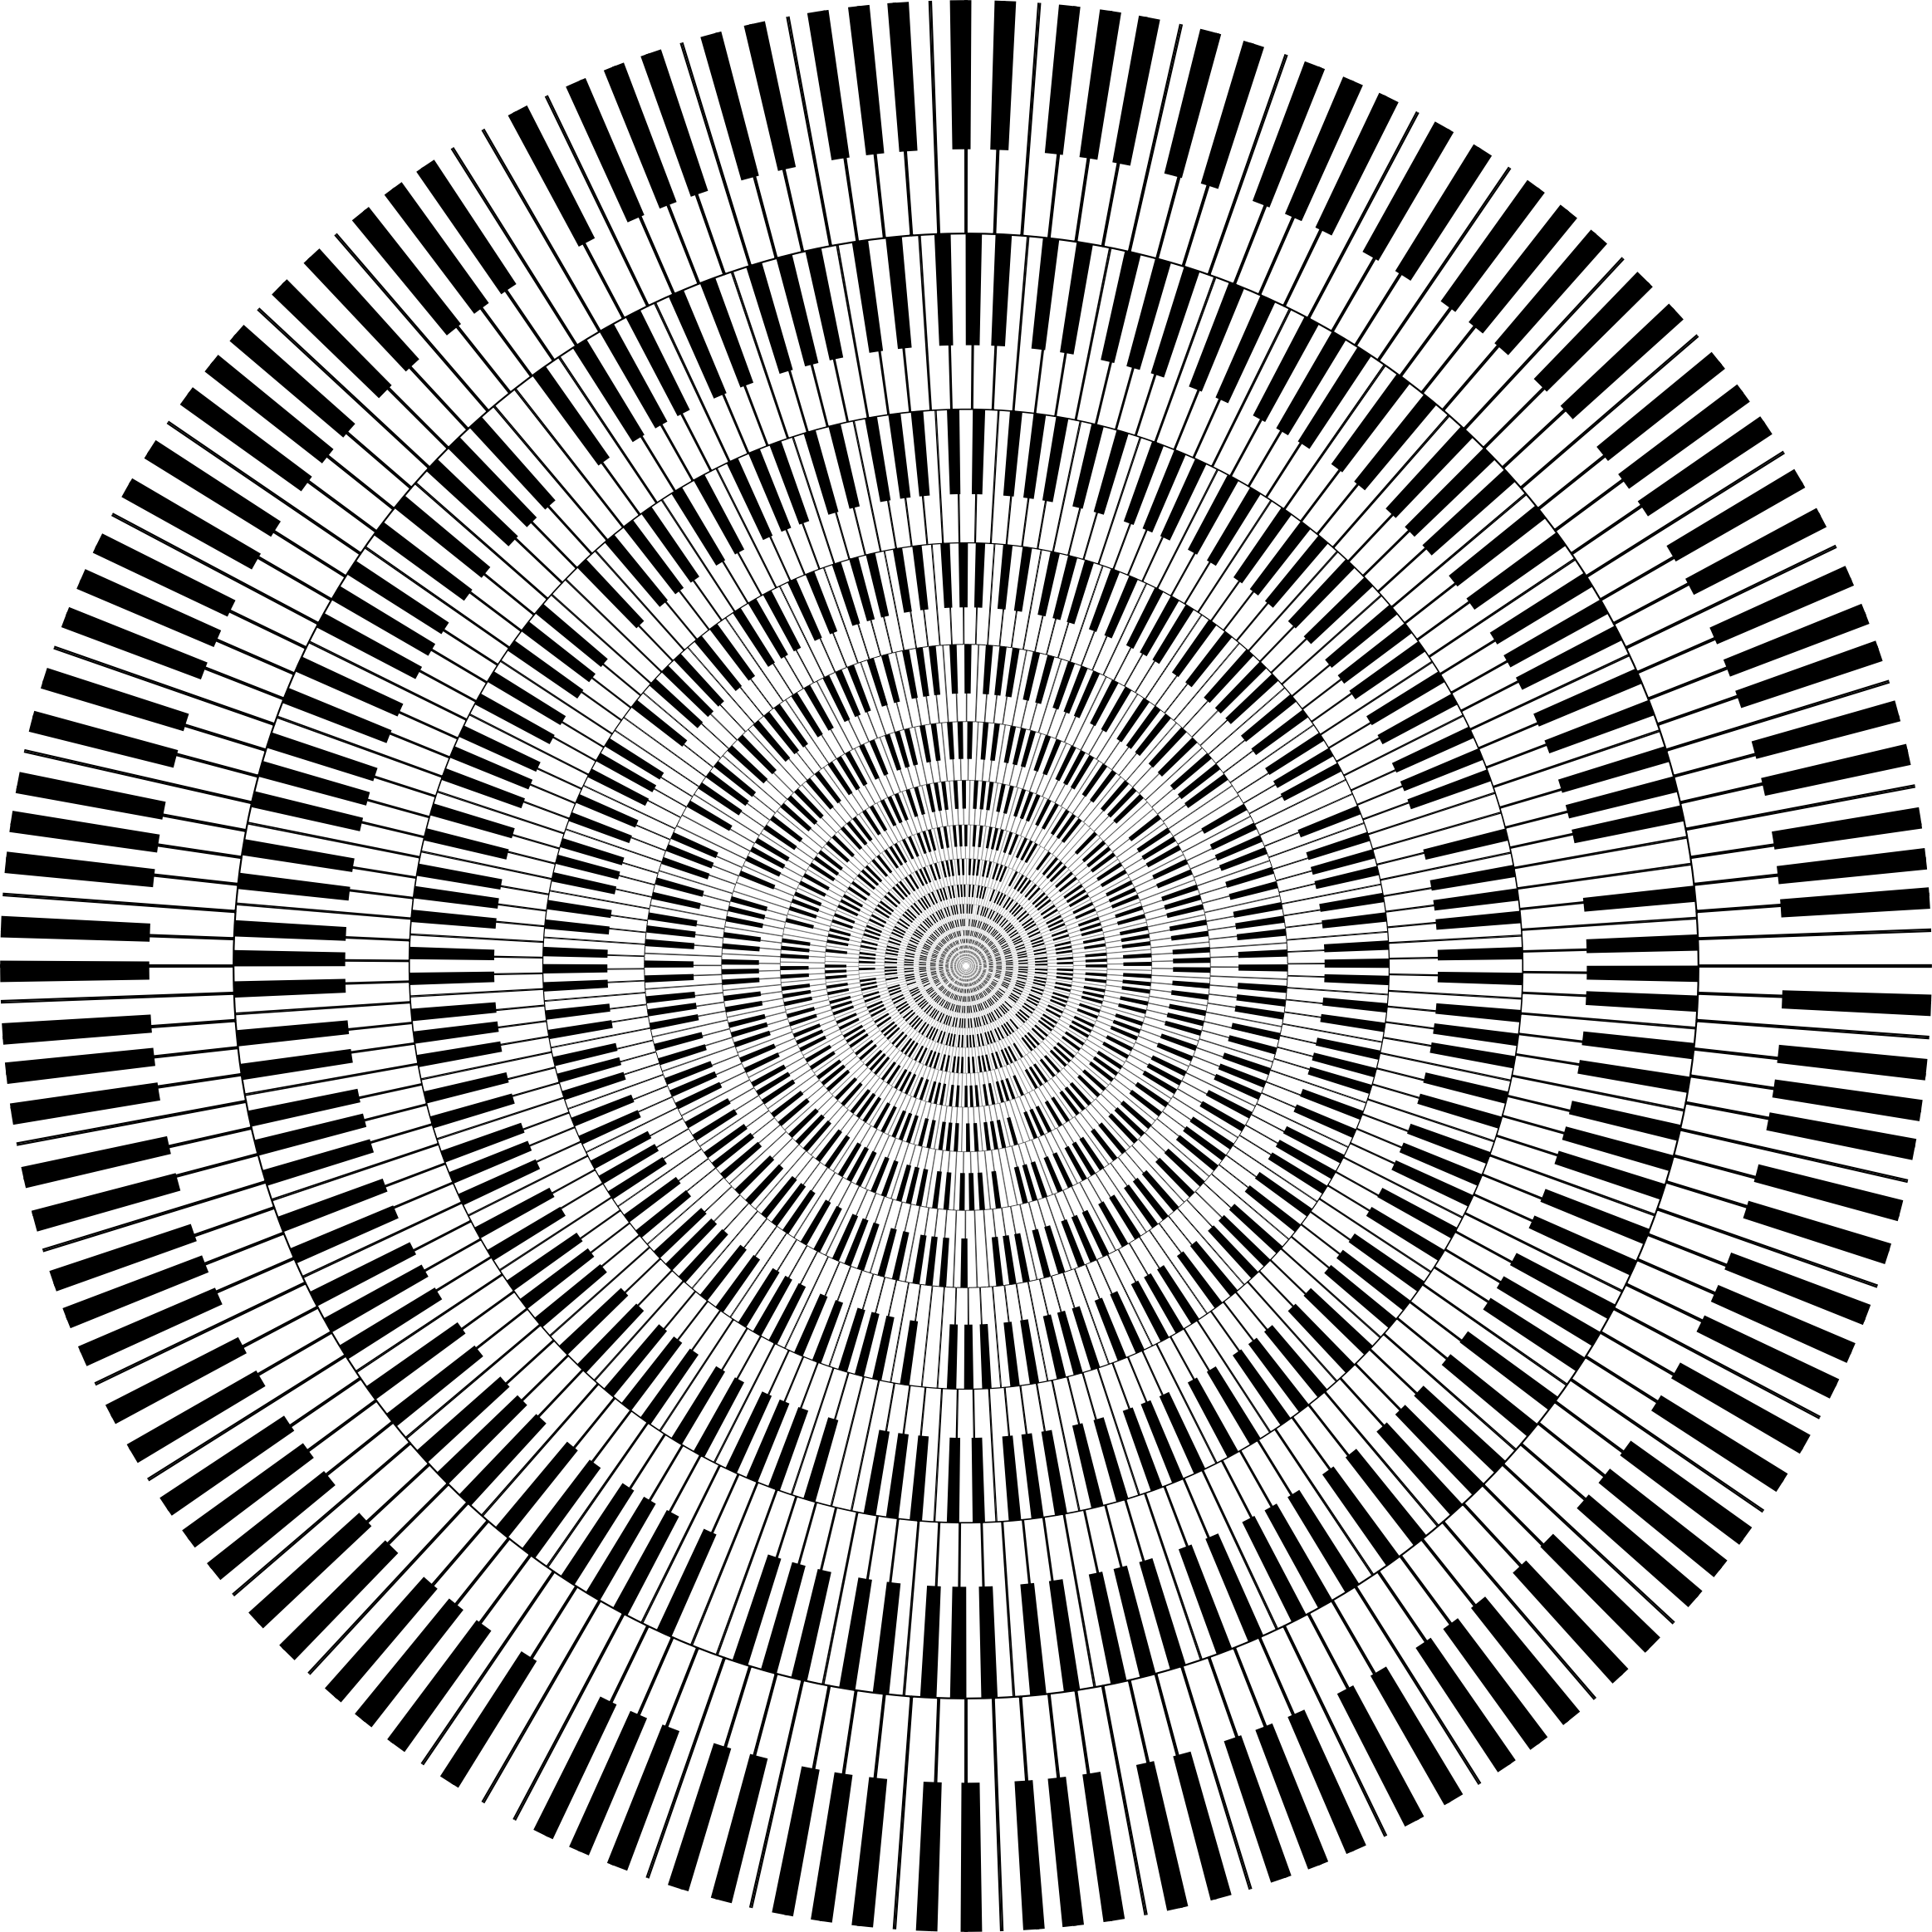 Piano Keys Circle Vortex by GDJ